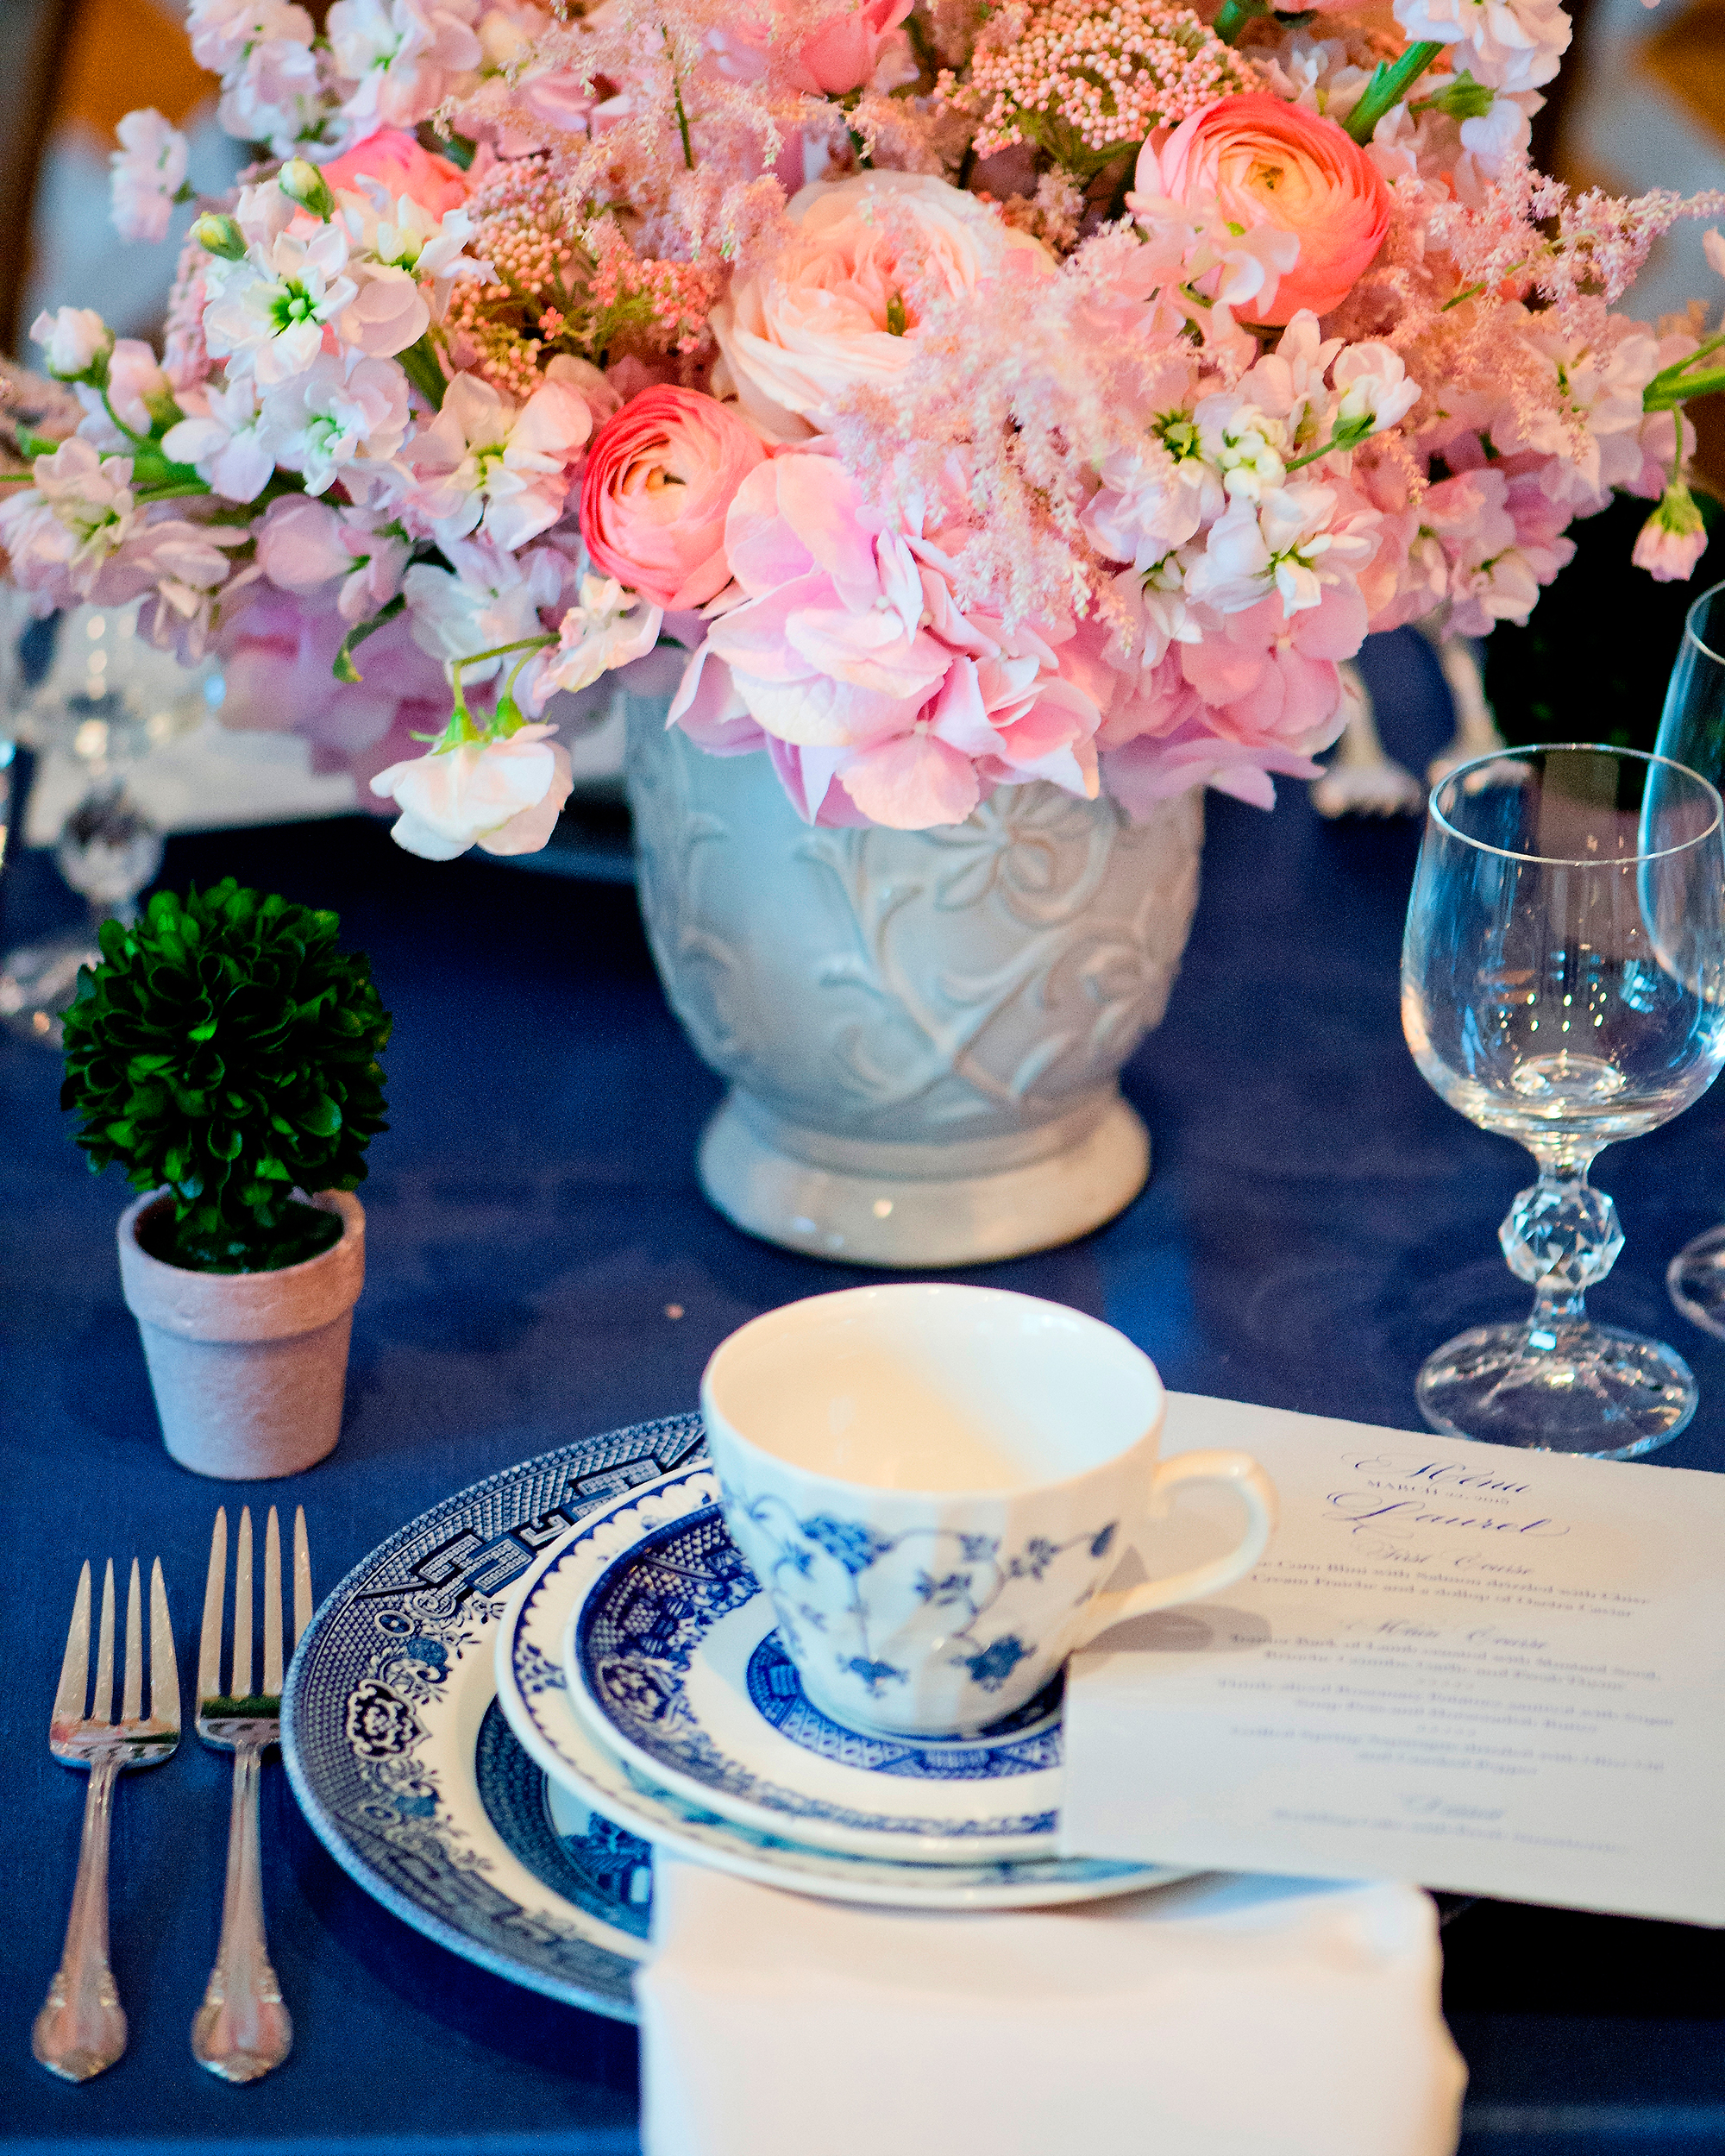 msw-chicago-party15-043-blue-china-table-setting-0315.jpg